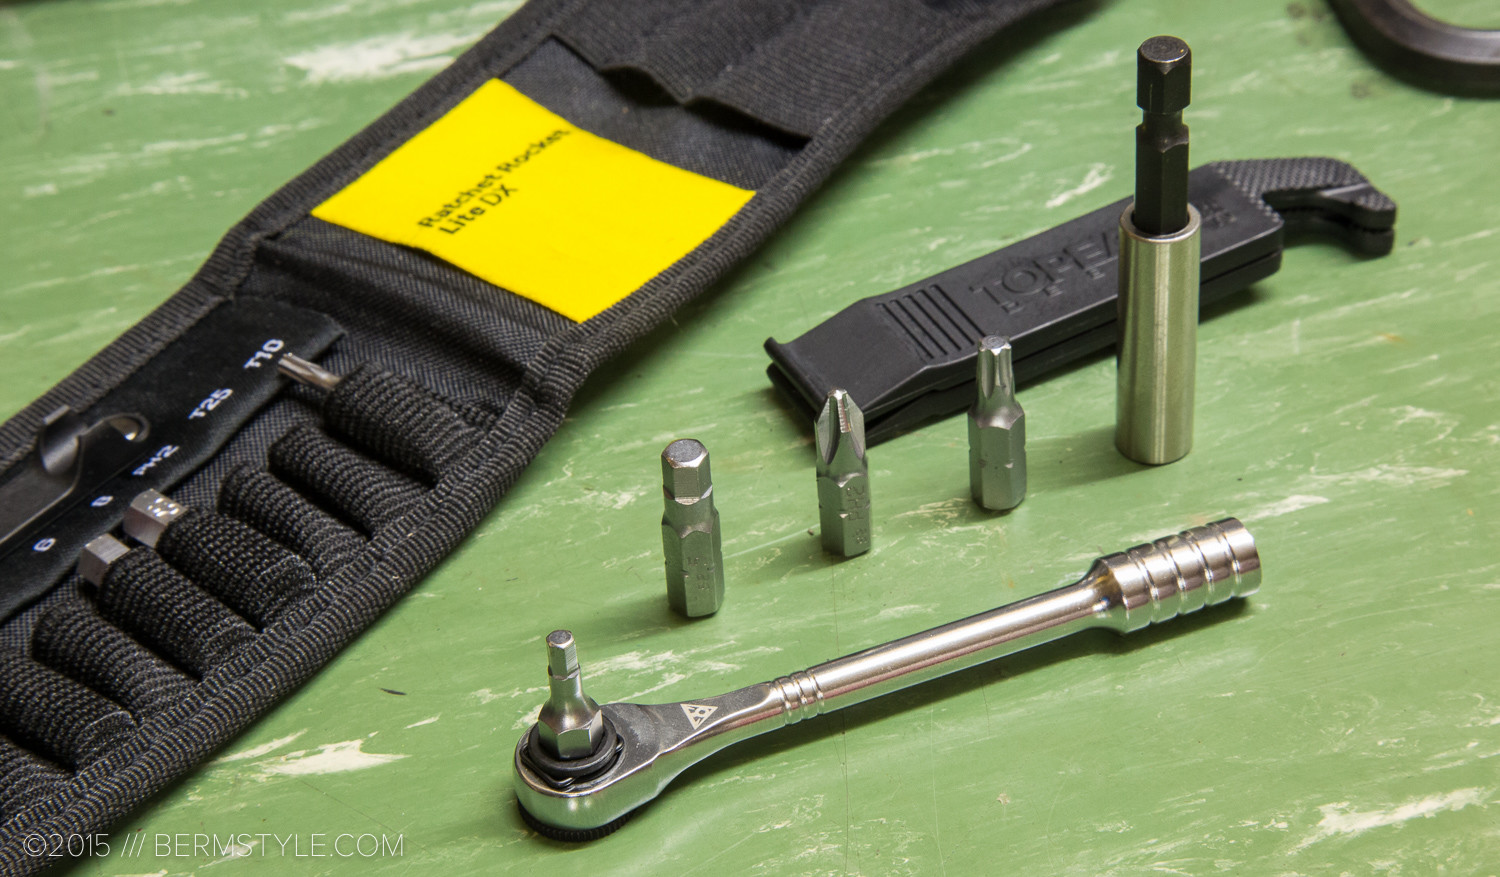 Review: Topeak Ratchet Rocket Lite DX Multi-tool